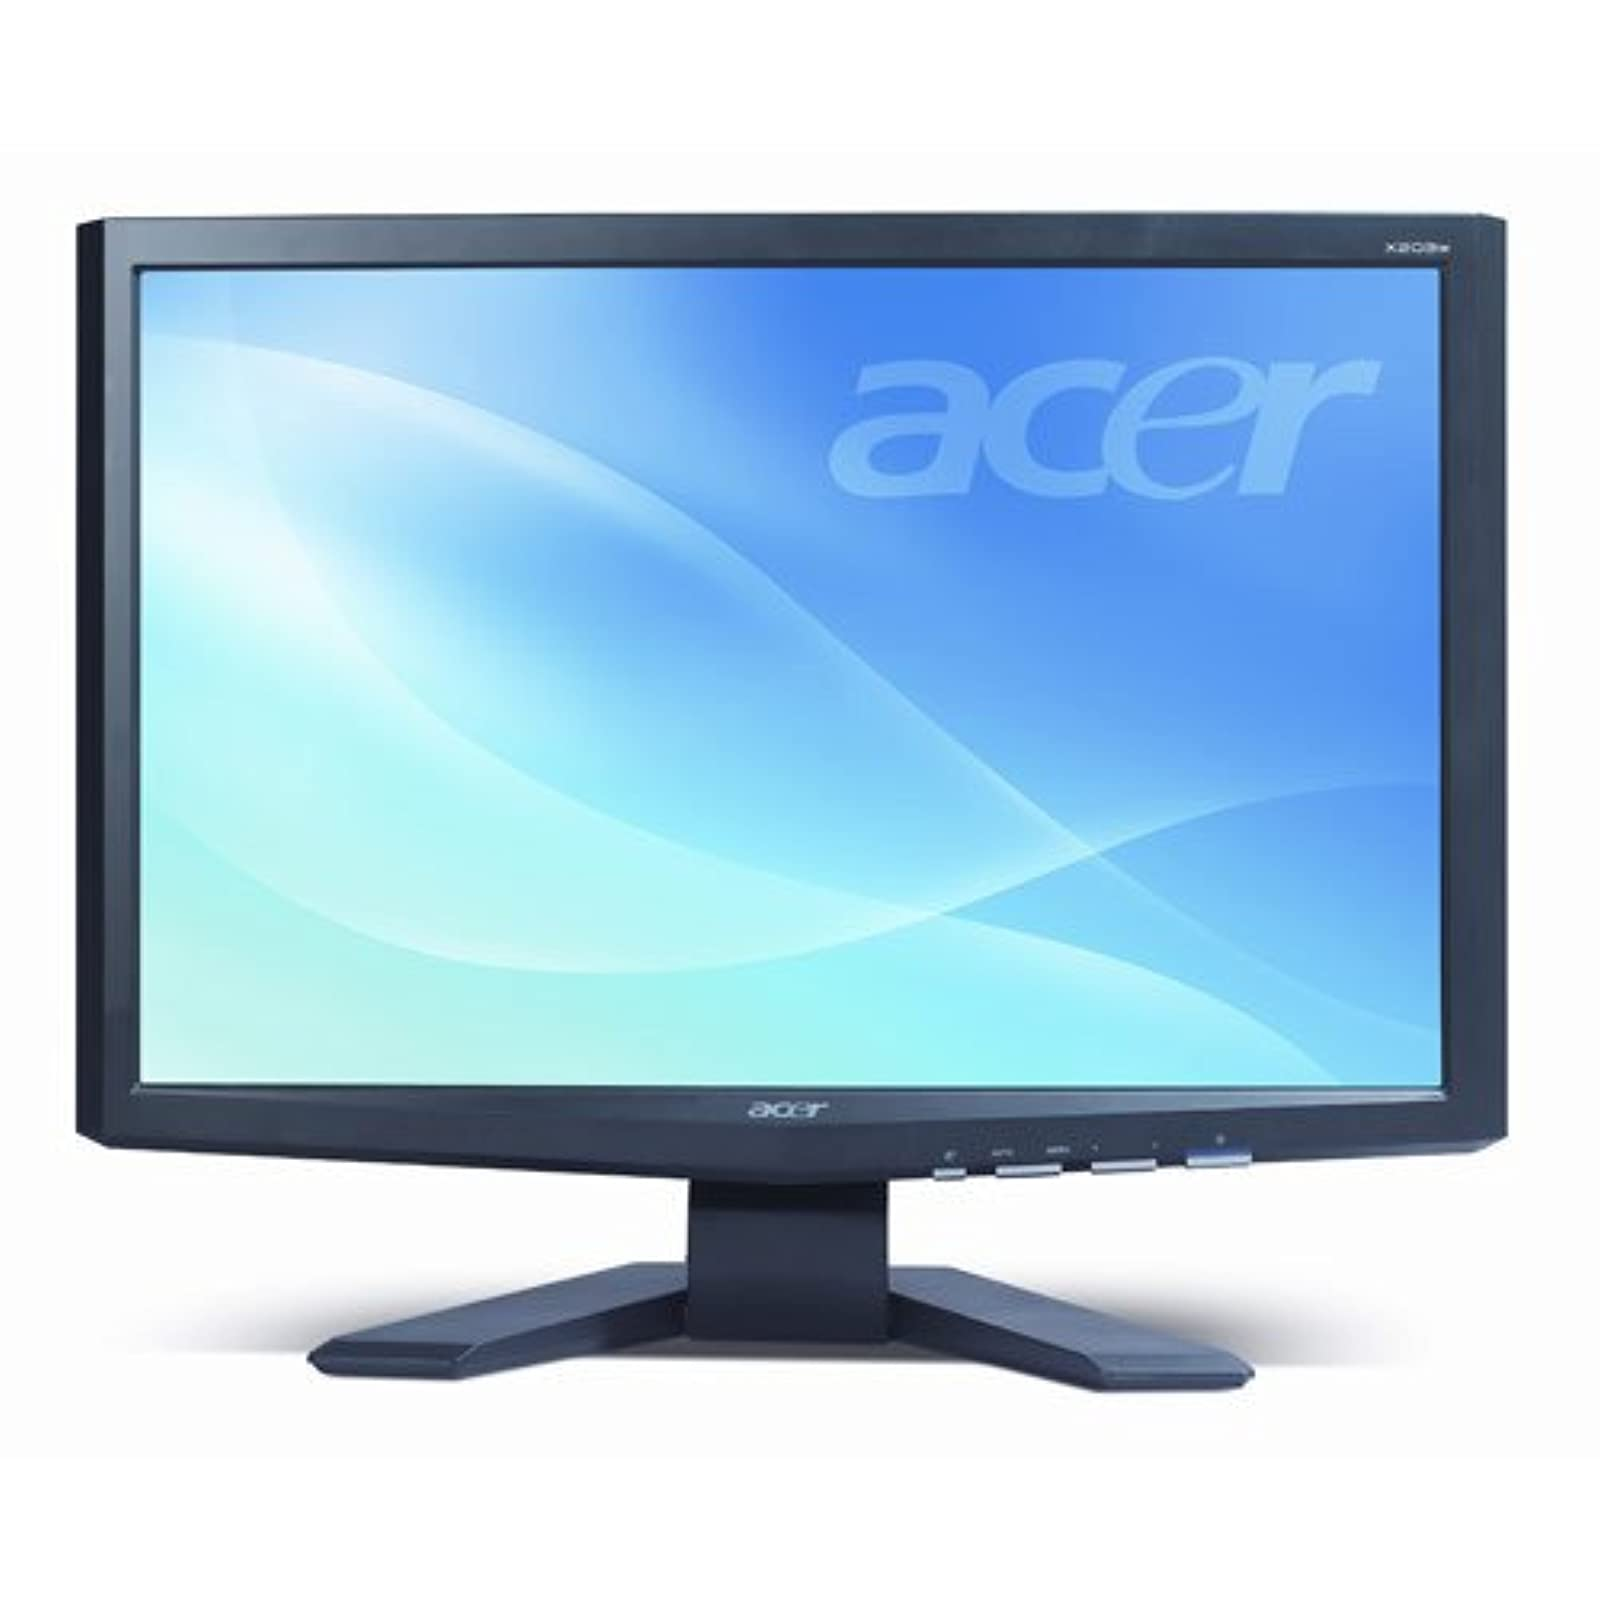 Acer X203H Bd 20 Inch LCD Monitor